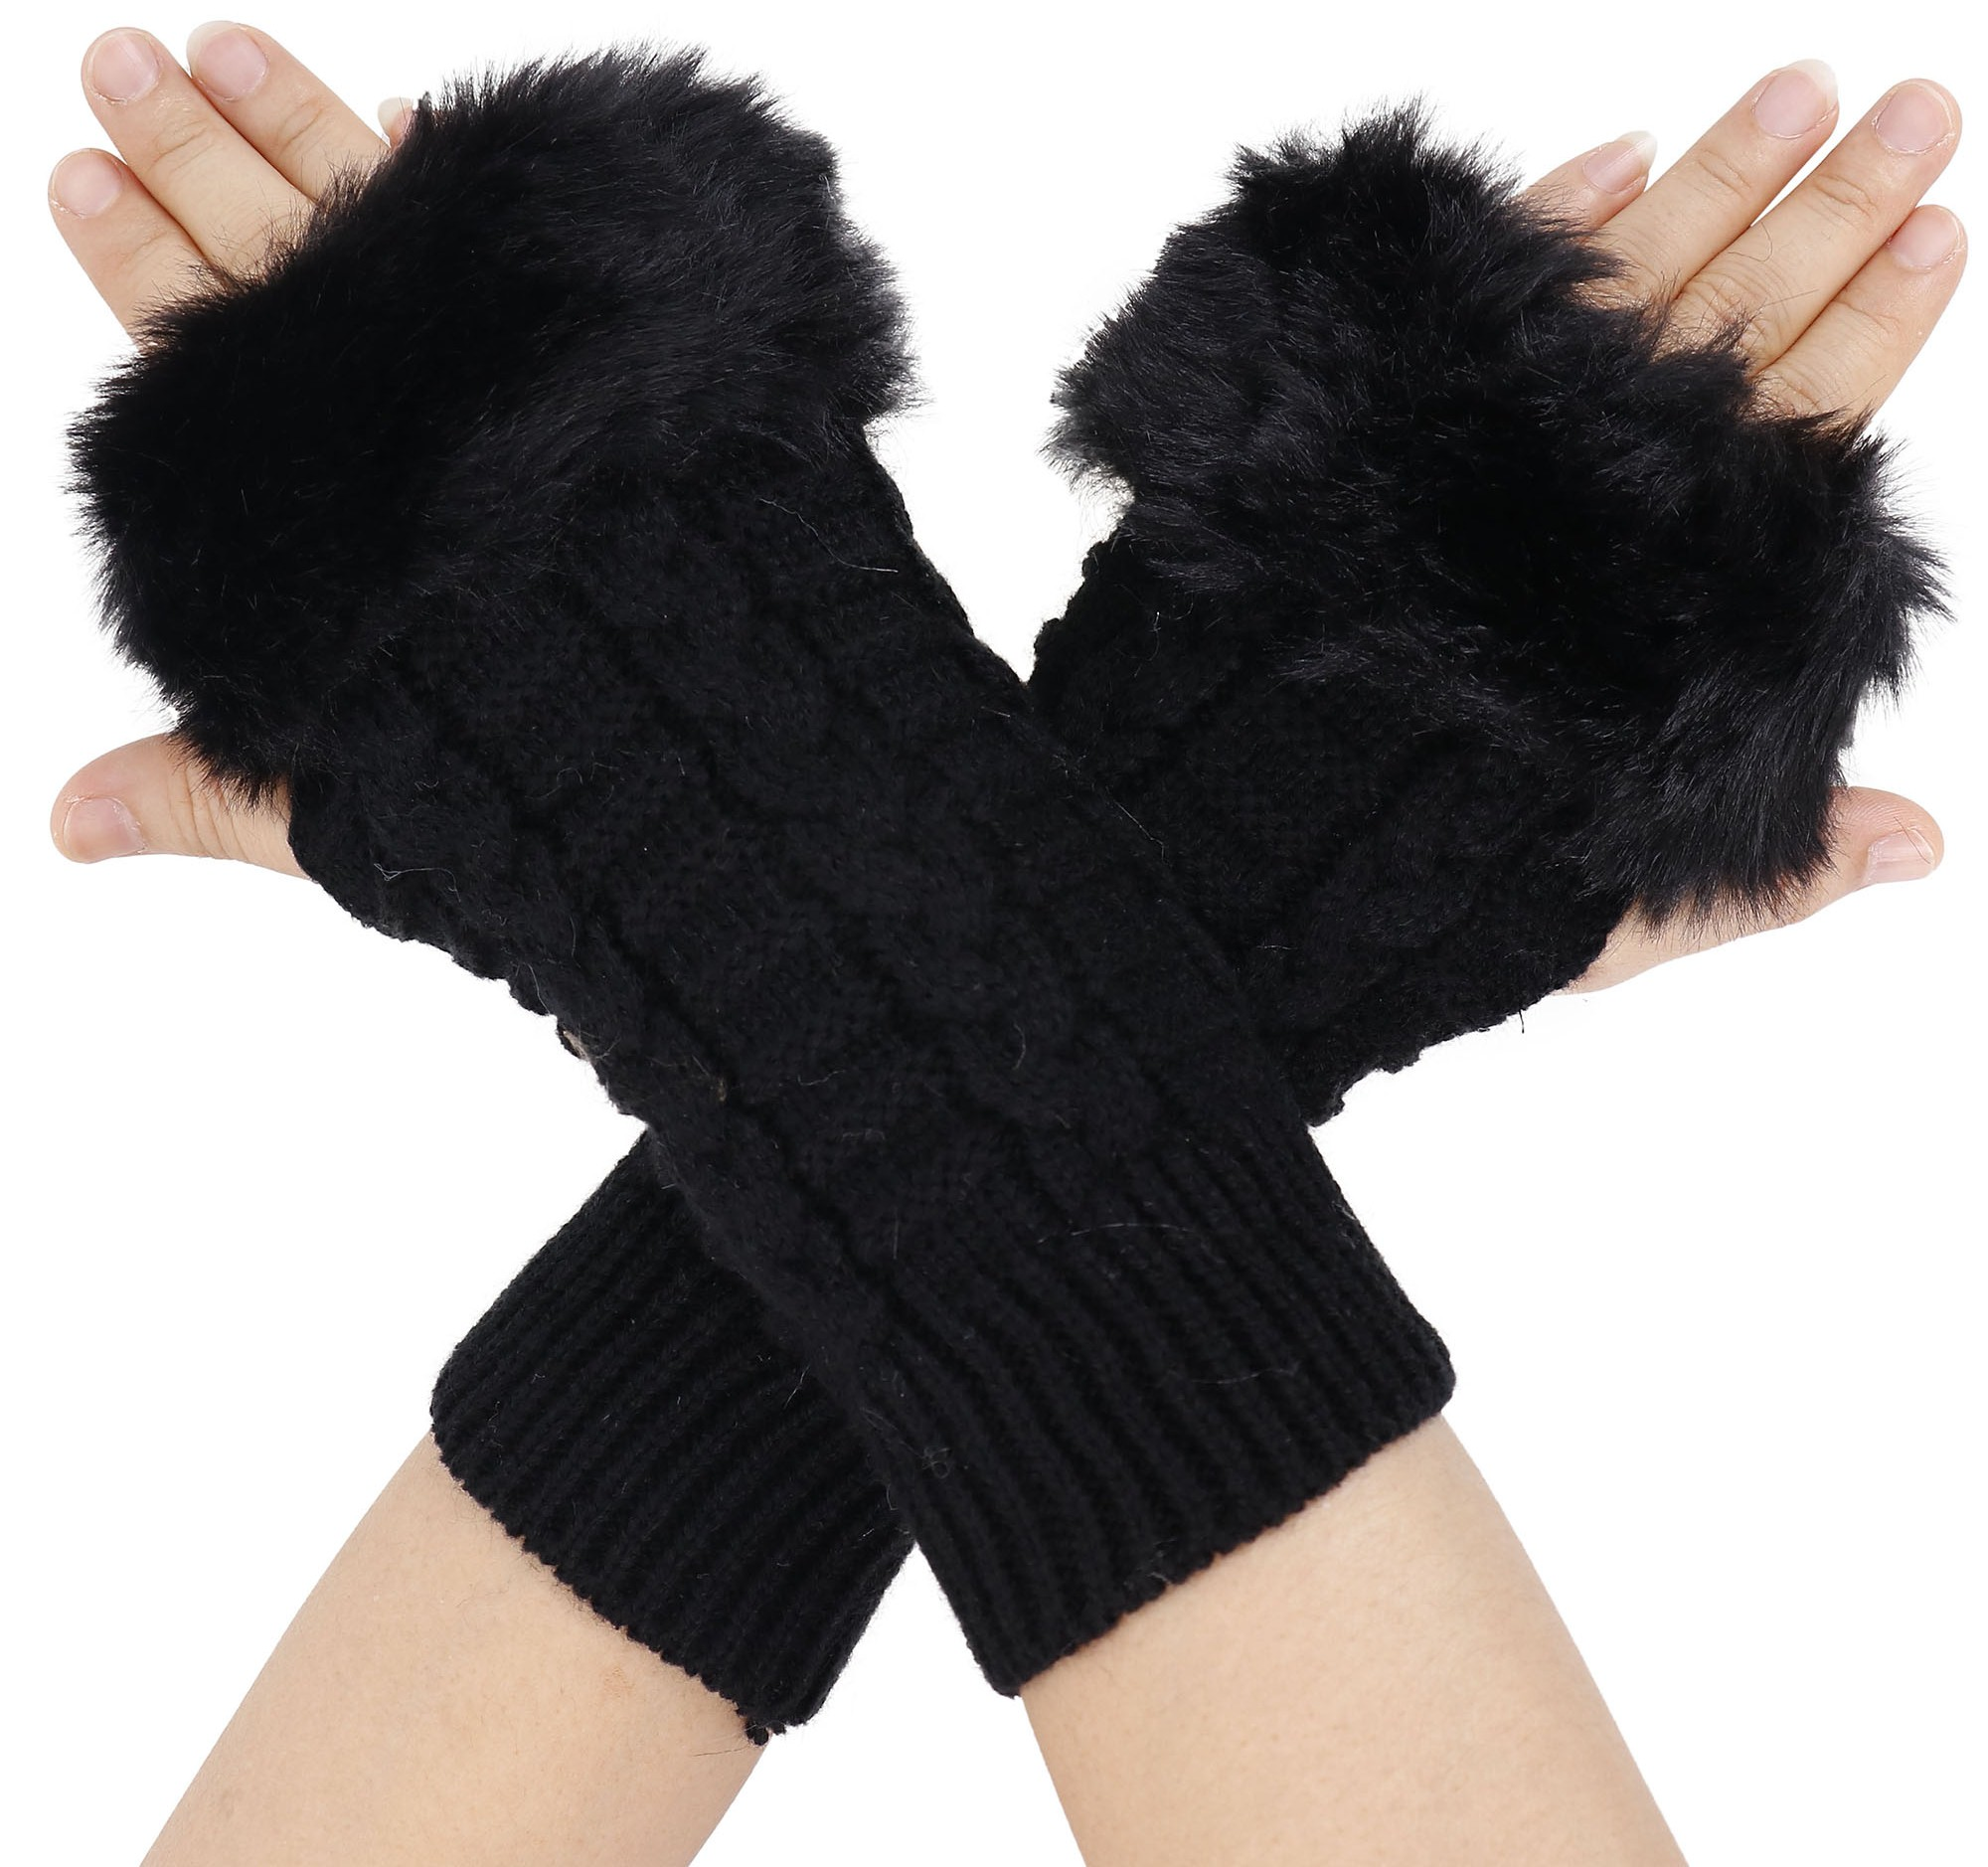 Simplicity Winter Warmer Women Faux Knitted Hand Wrist Fingerless Gloves, Black2